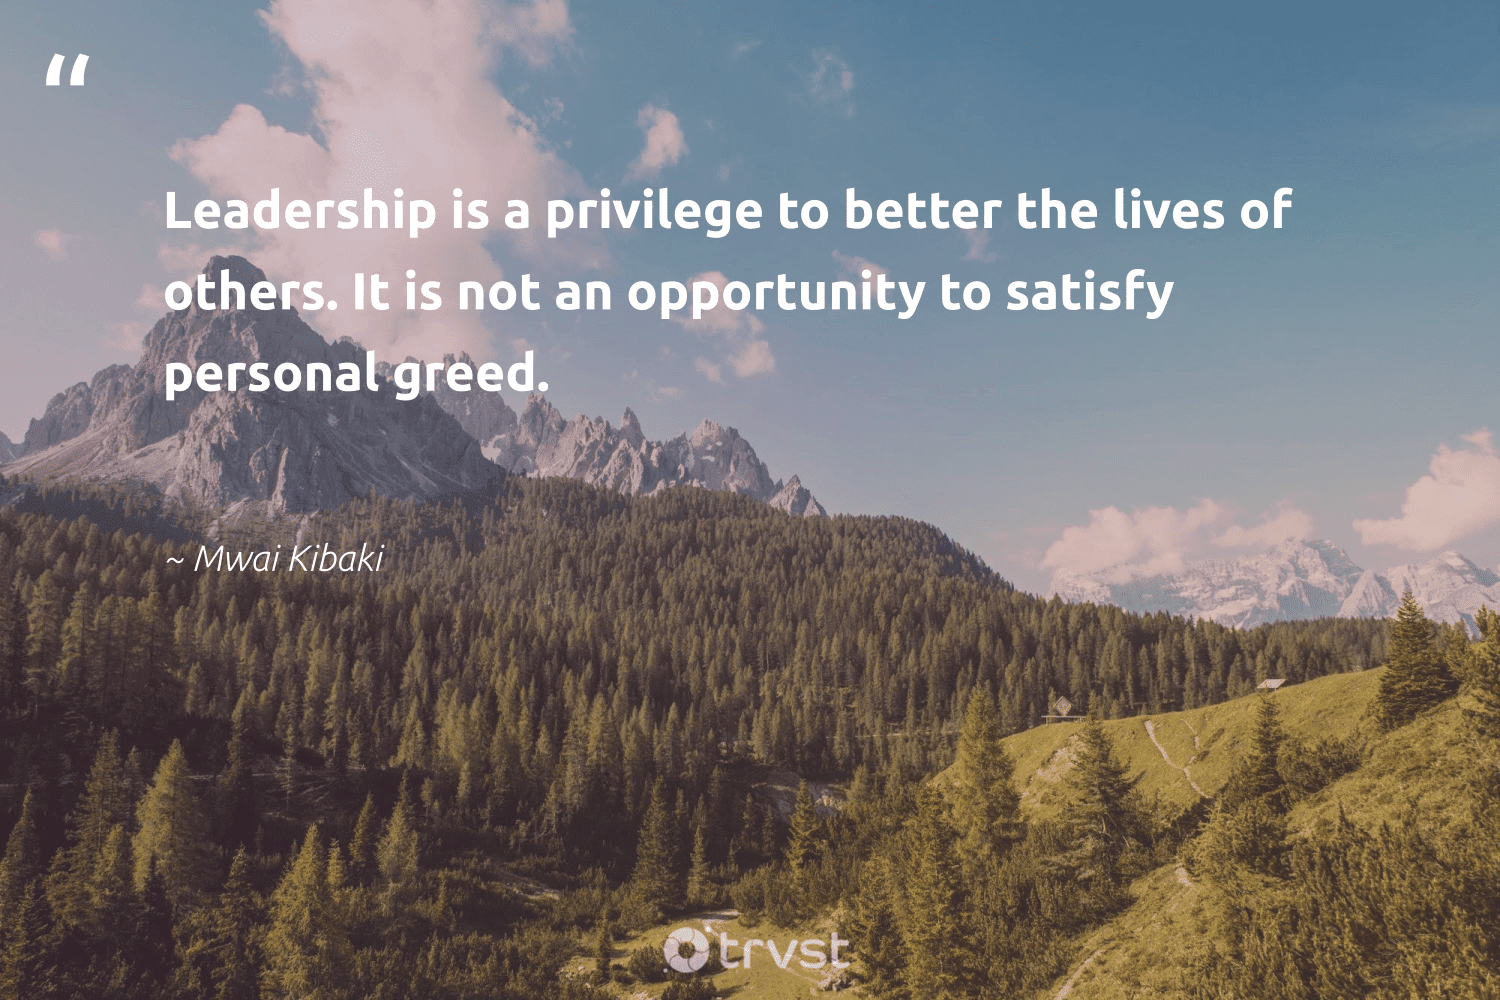 """""""Leadership is a privilege to better the lives of others. It is not an opportunity to satisfy personal greed.""""  - Mwai Kibaki #trvst #quotes #leadership #leadershipskills #begreat #softskills #collectiveaction #leadershipdevelopment #nevergiveup #futureofwork #socialimpact #leadershipqualities"""